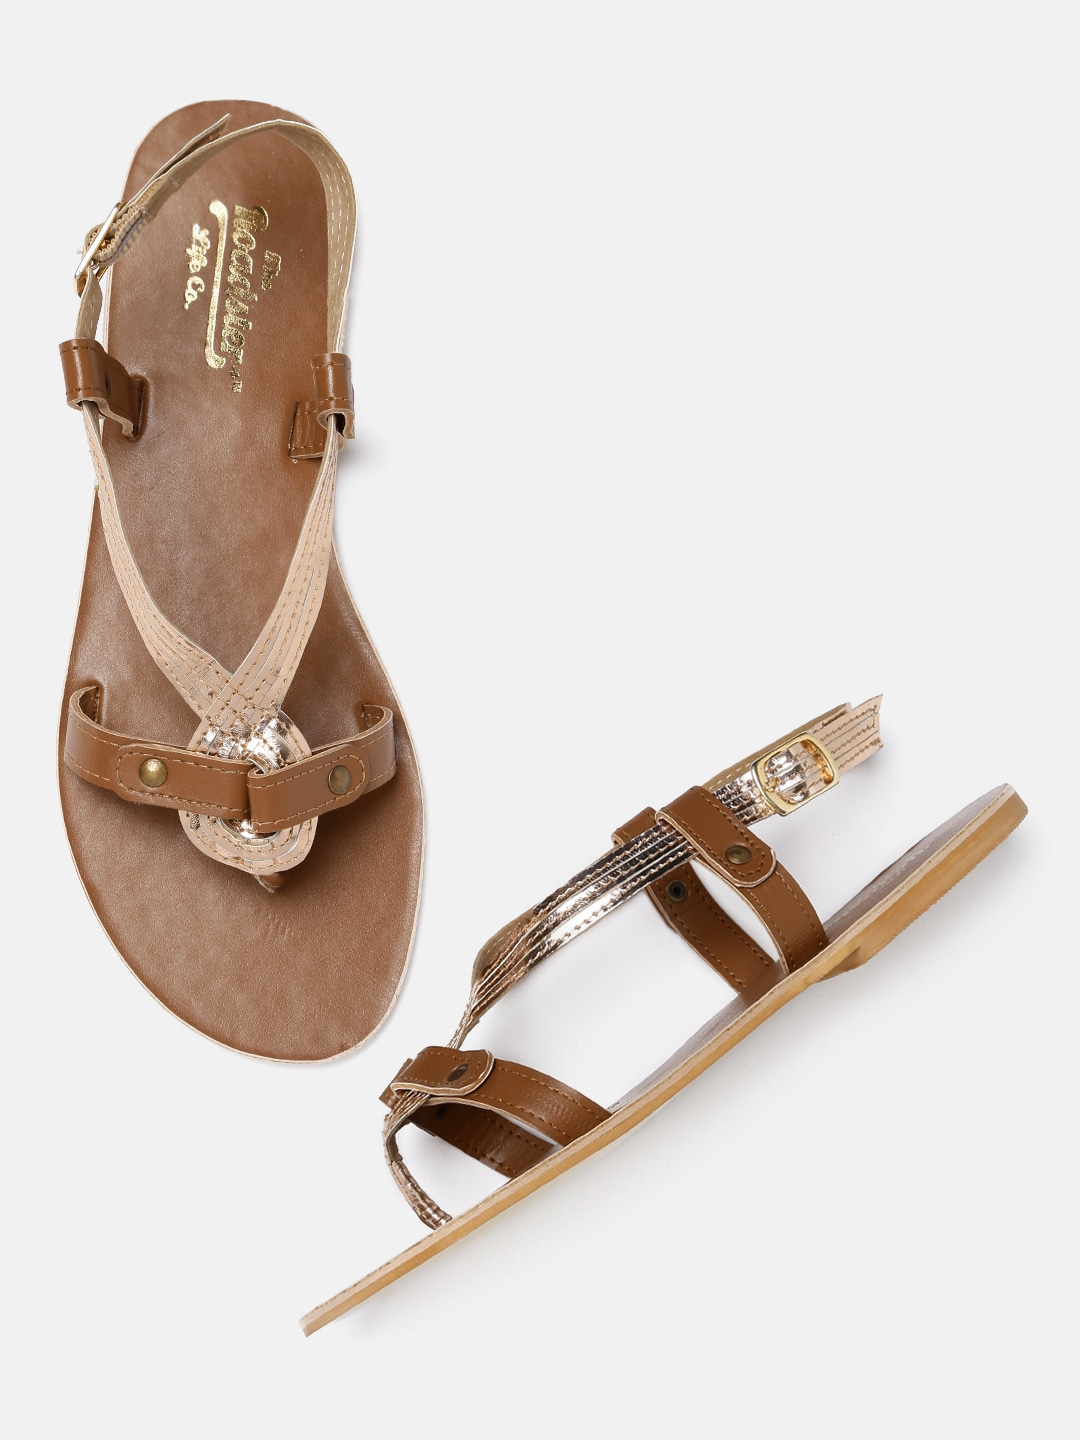 Flats And Casual Shoes Menu Infocus - Buy Flats And Casual Shoes Menu  Infocus online in India